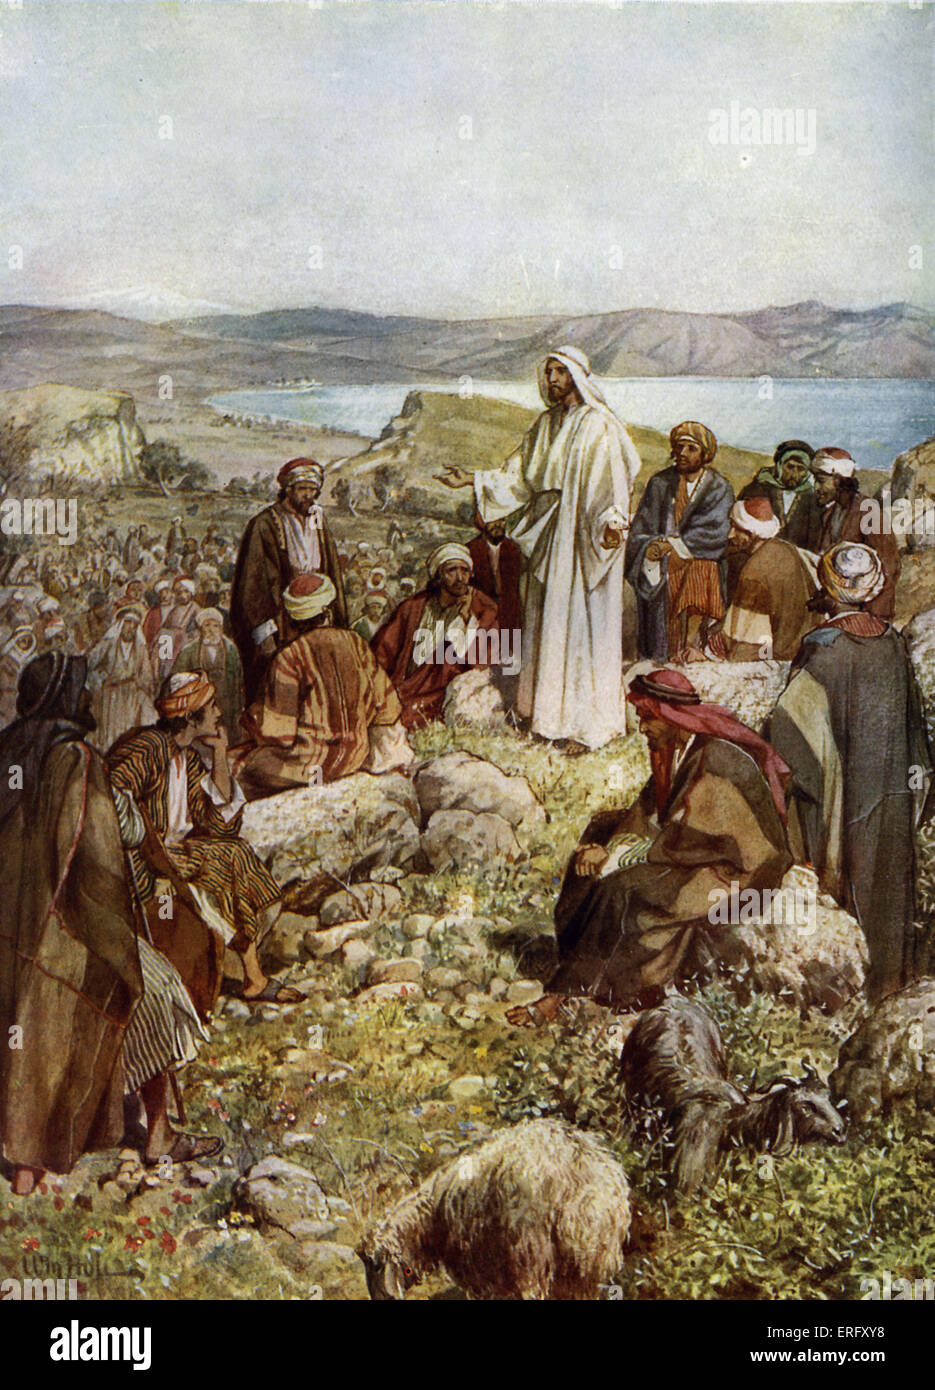 Jesus and the twelve apostles. 'And when it was day, he called his disciples: and he chose from them twelve, - Stock Image